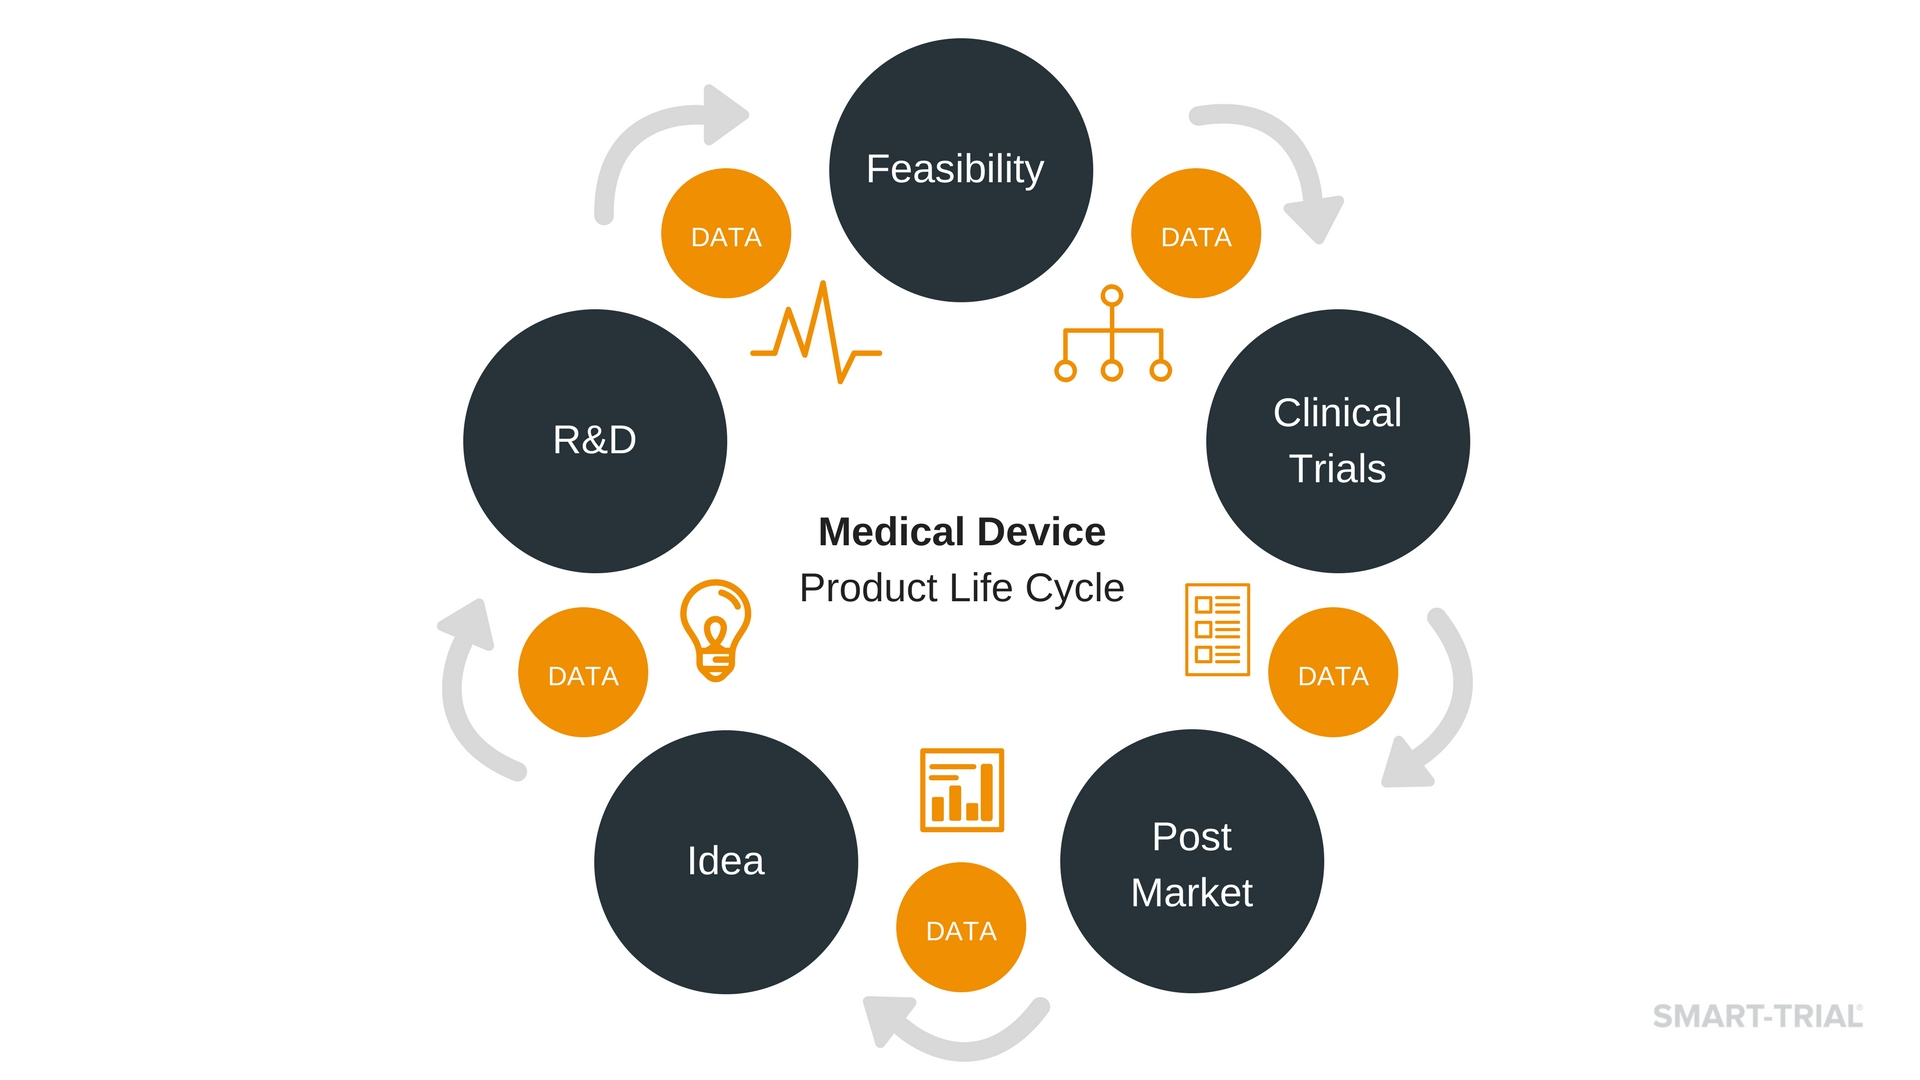 Medical Device Product Life Cycle Data